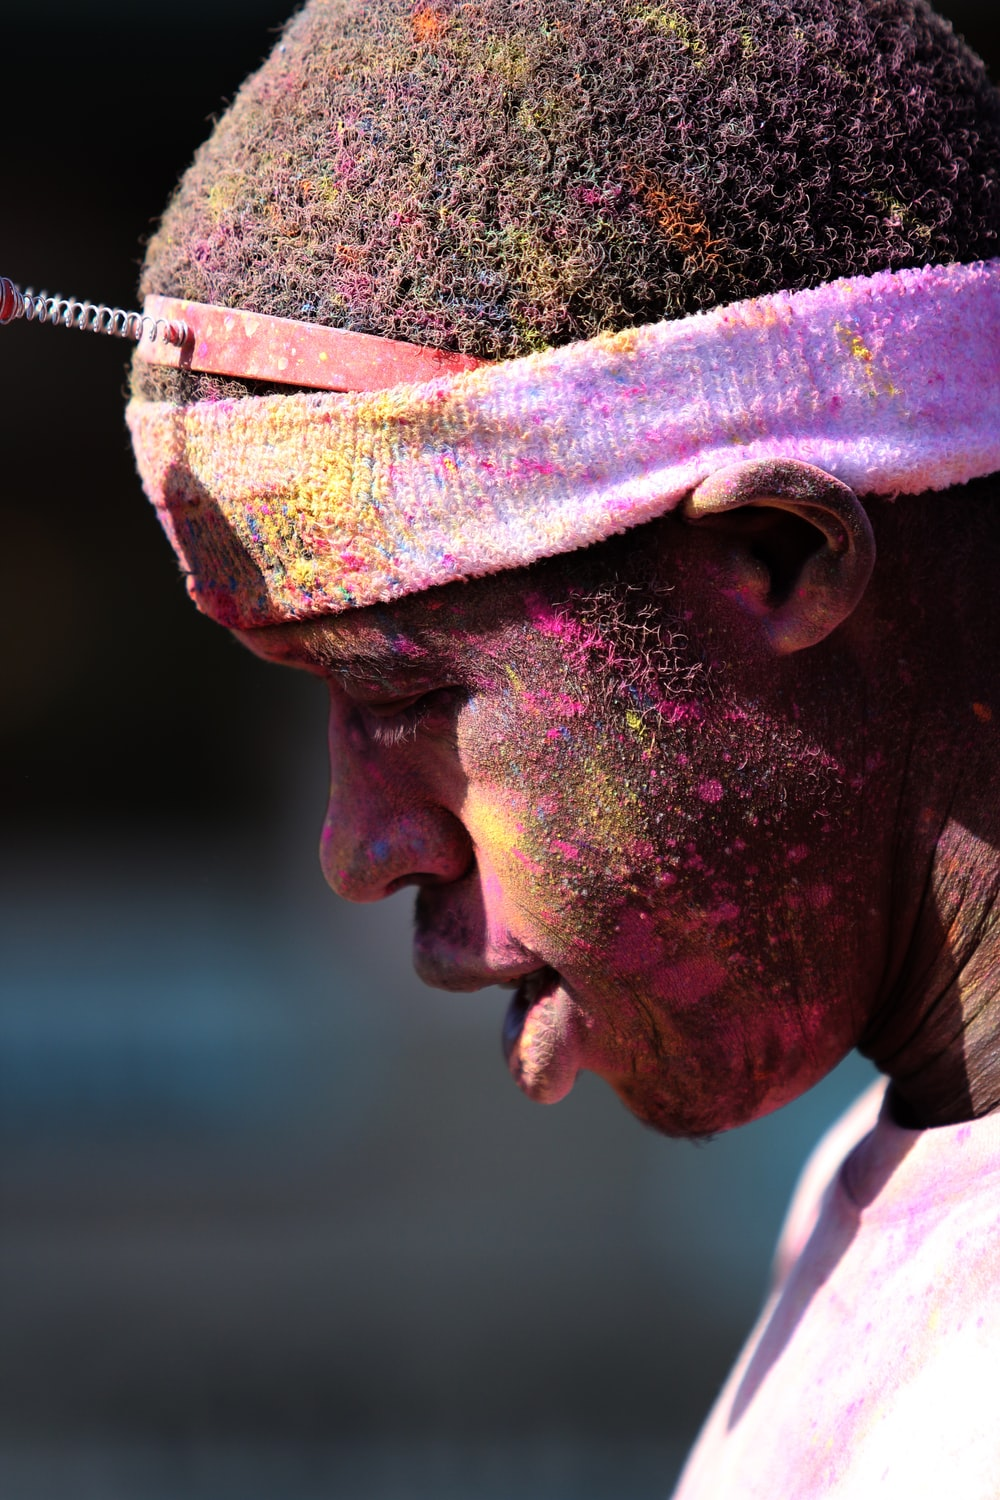 man with pink paint splattered hair and face